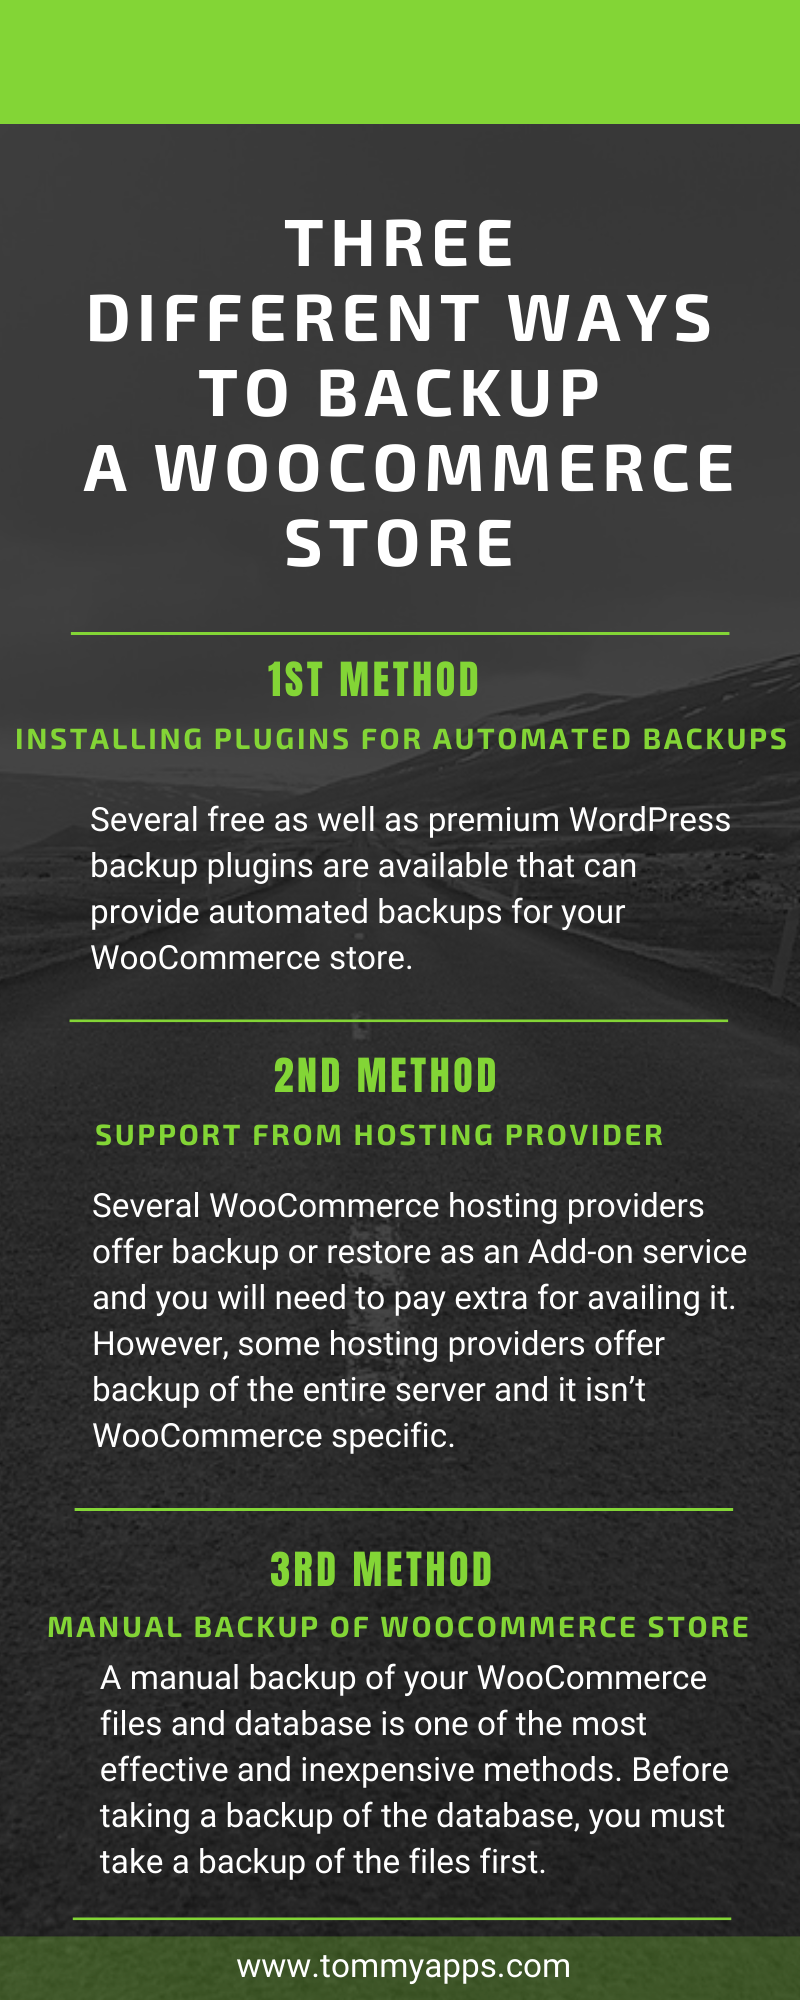 three different ways to backup a WooCommerce store